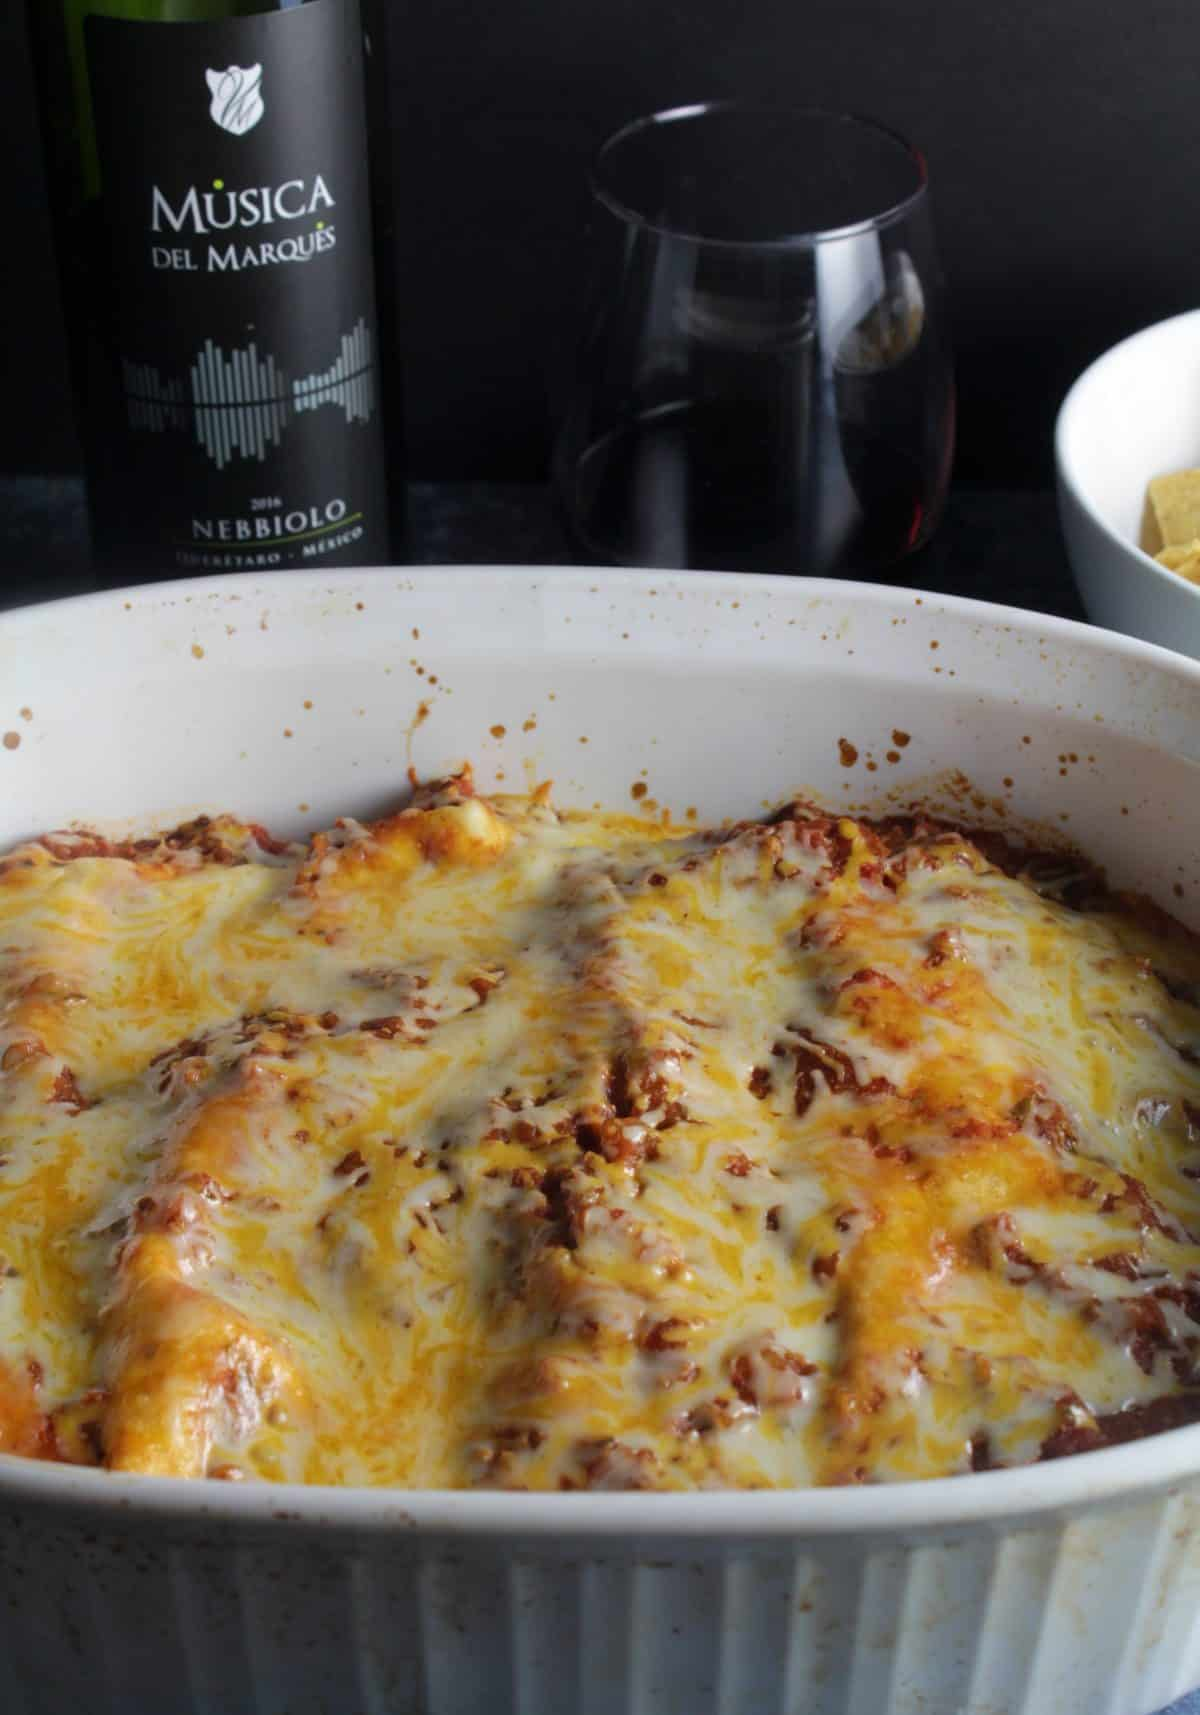 Ground Turkey Enchiladas in a baking dish, topped with cheese and sauce, and served with a red wine.